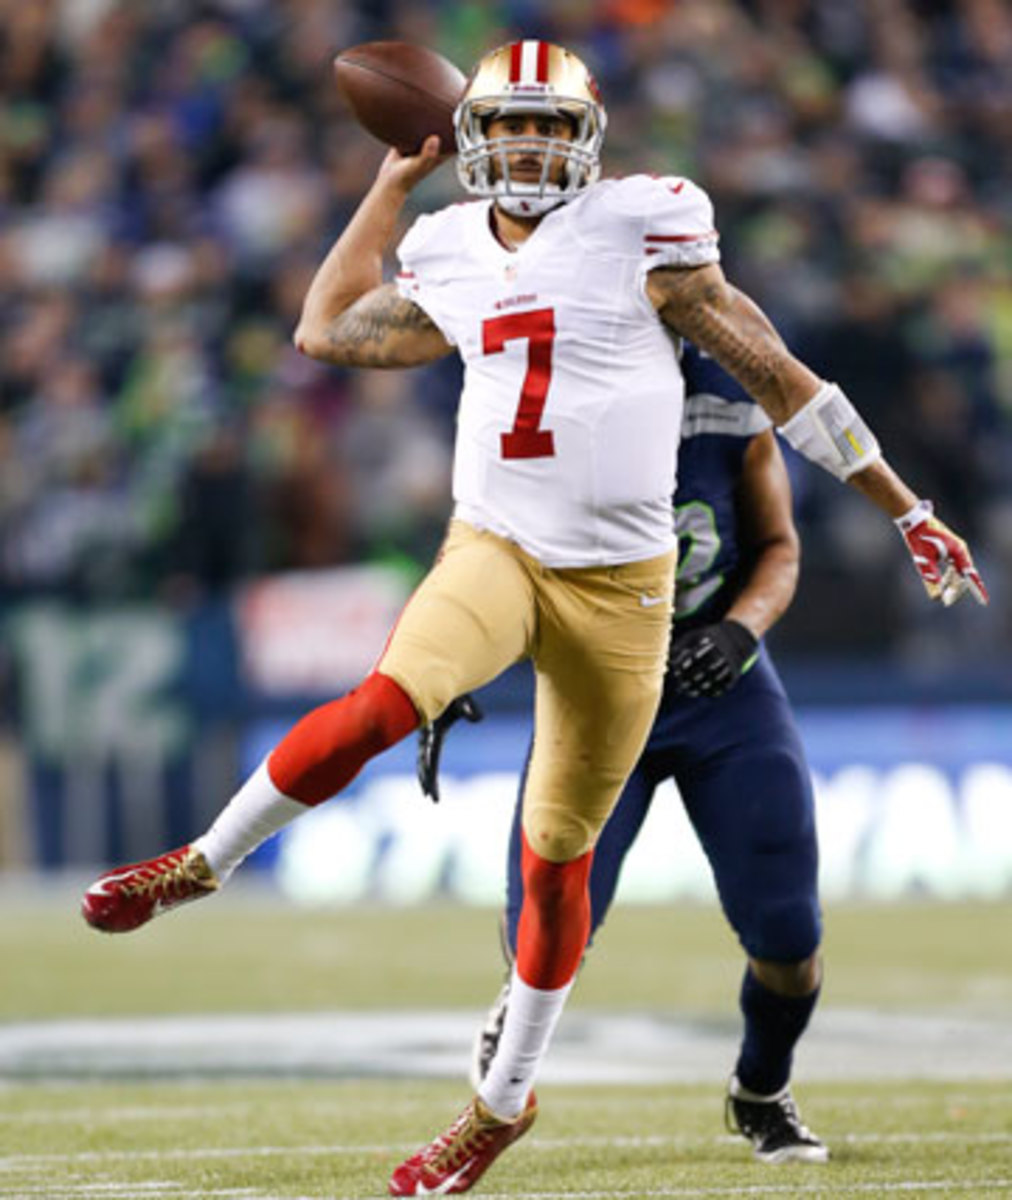 Colin Kaepernick signed a reported six-year, $126 million deal in June. (Michael Zagaris/Getty Images)